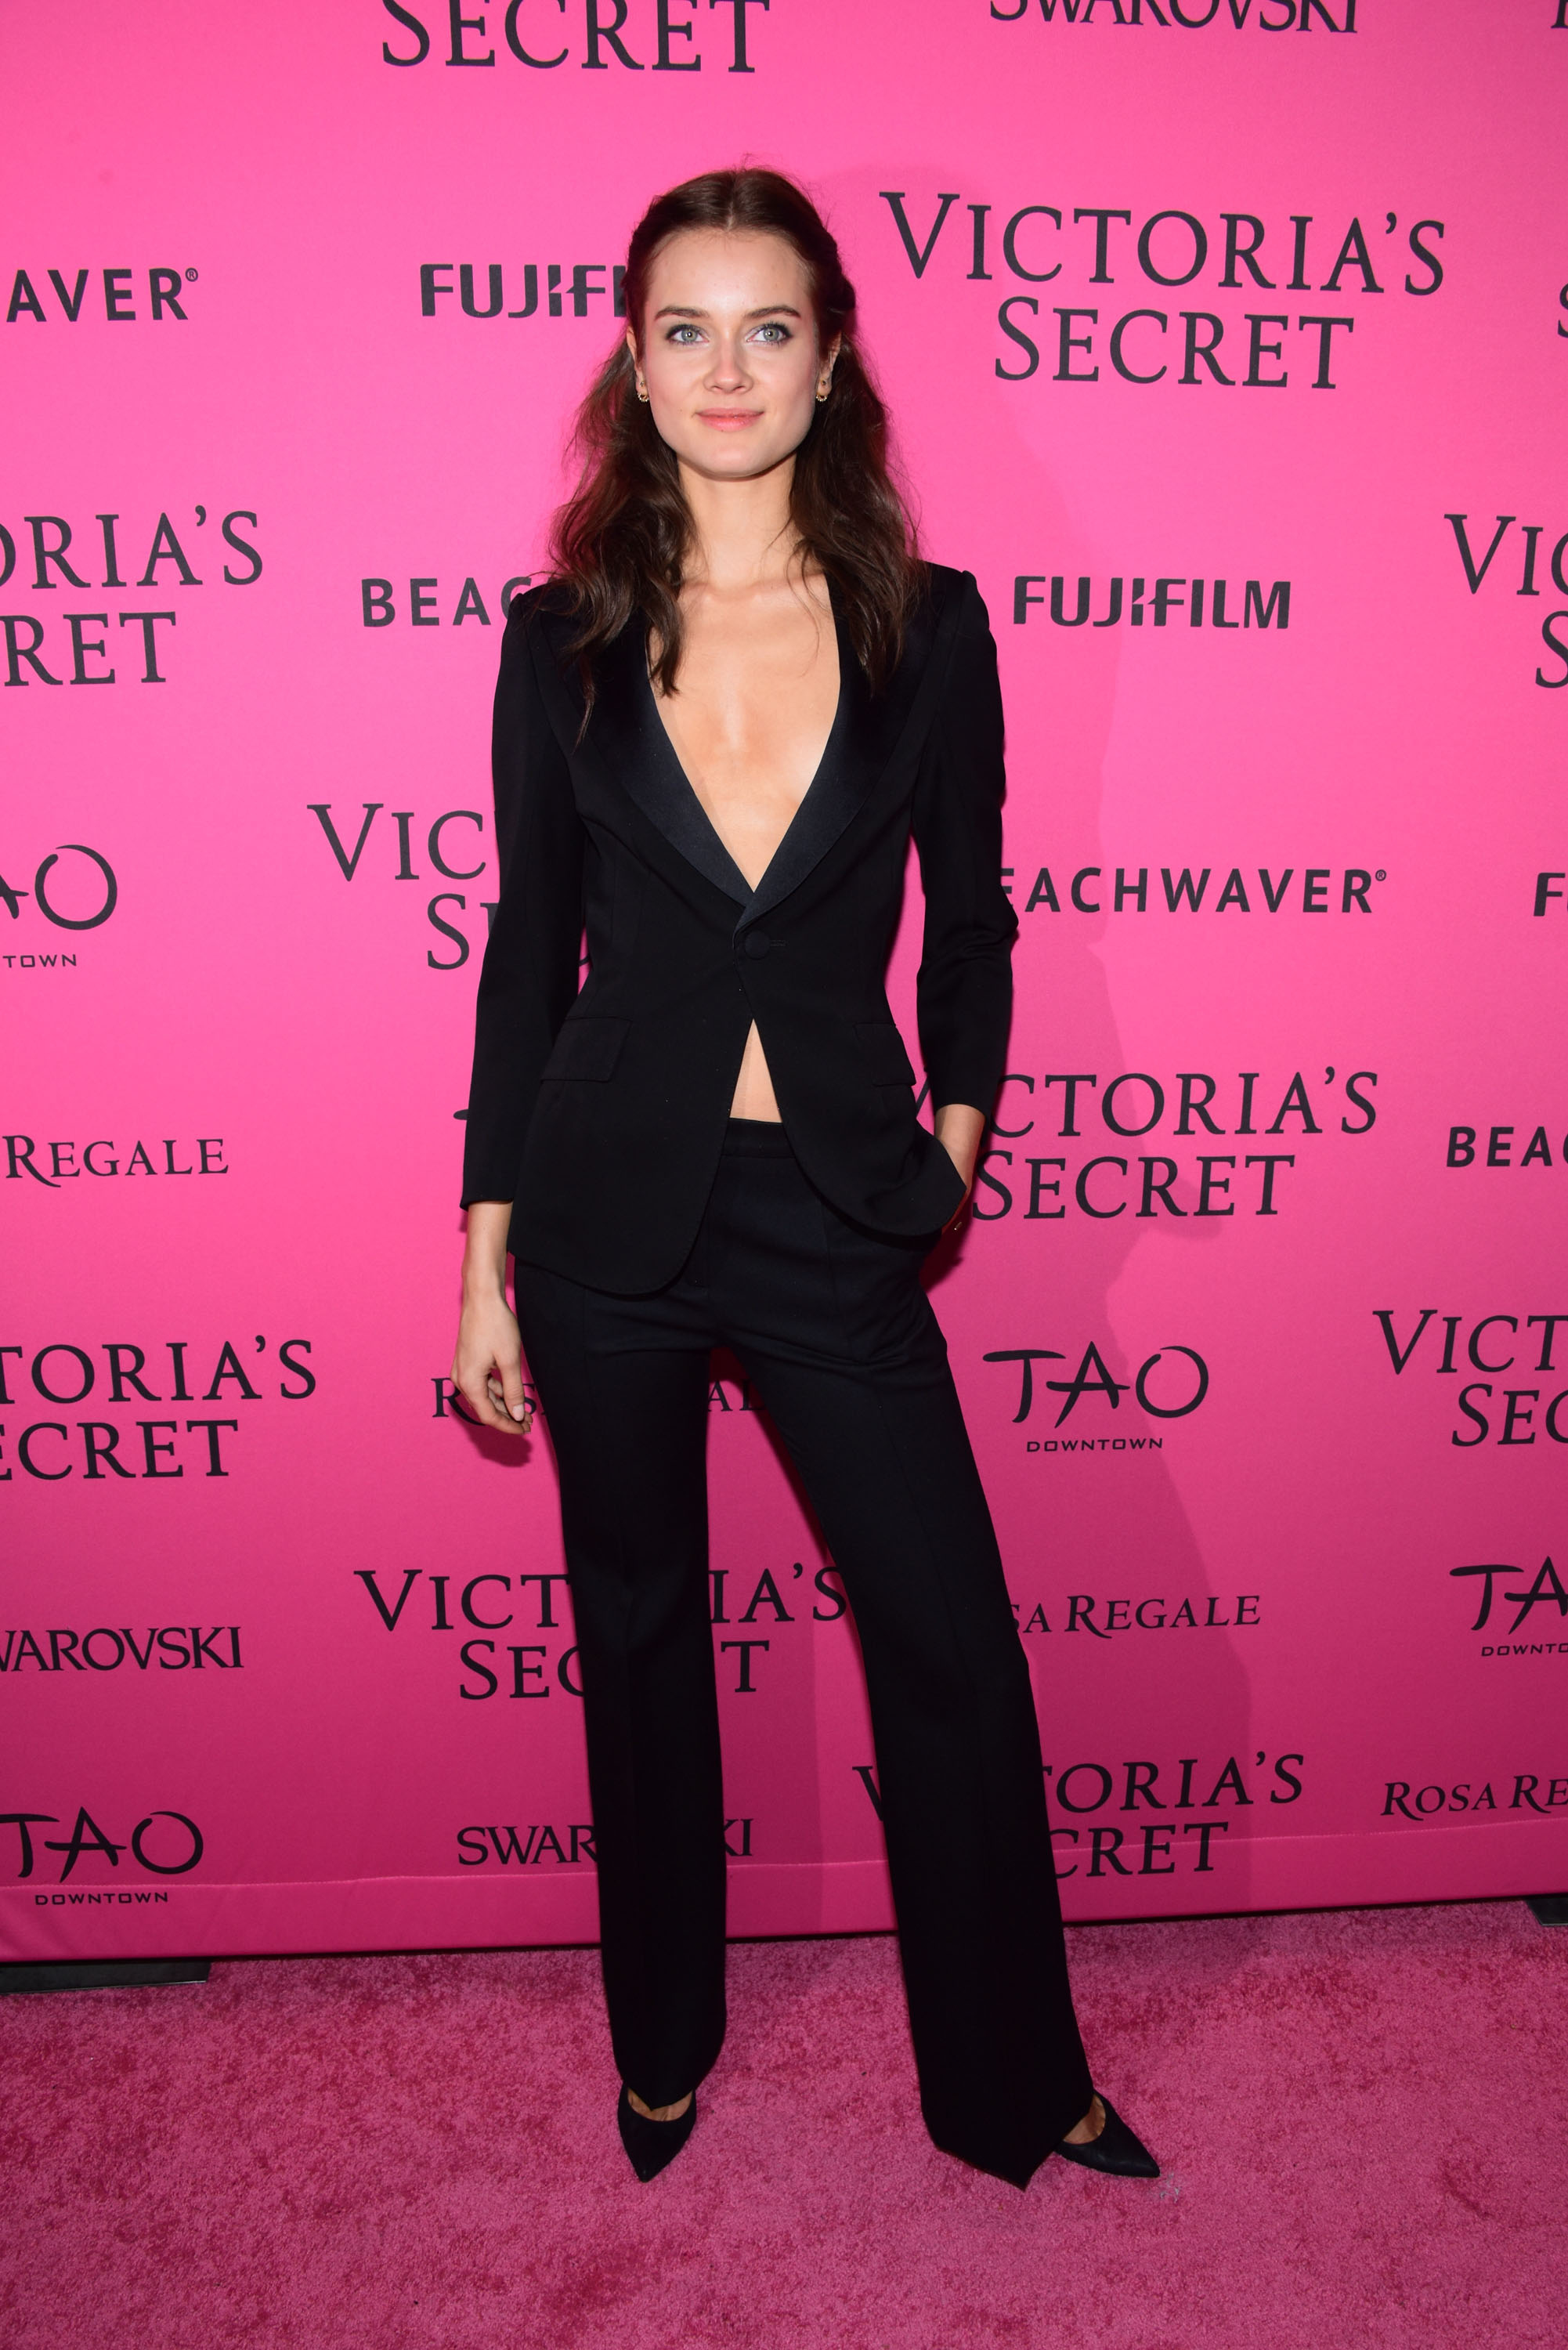 NEW YORK, NY - NOVEMBER 10: Monika Jagaciak attends the 2015 Victoria's Secret Fashion After Party at TAO Downtown on November 10, 2015 in New York City. (Photo by Grant Lamos IV/Getty Images)